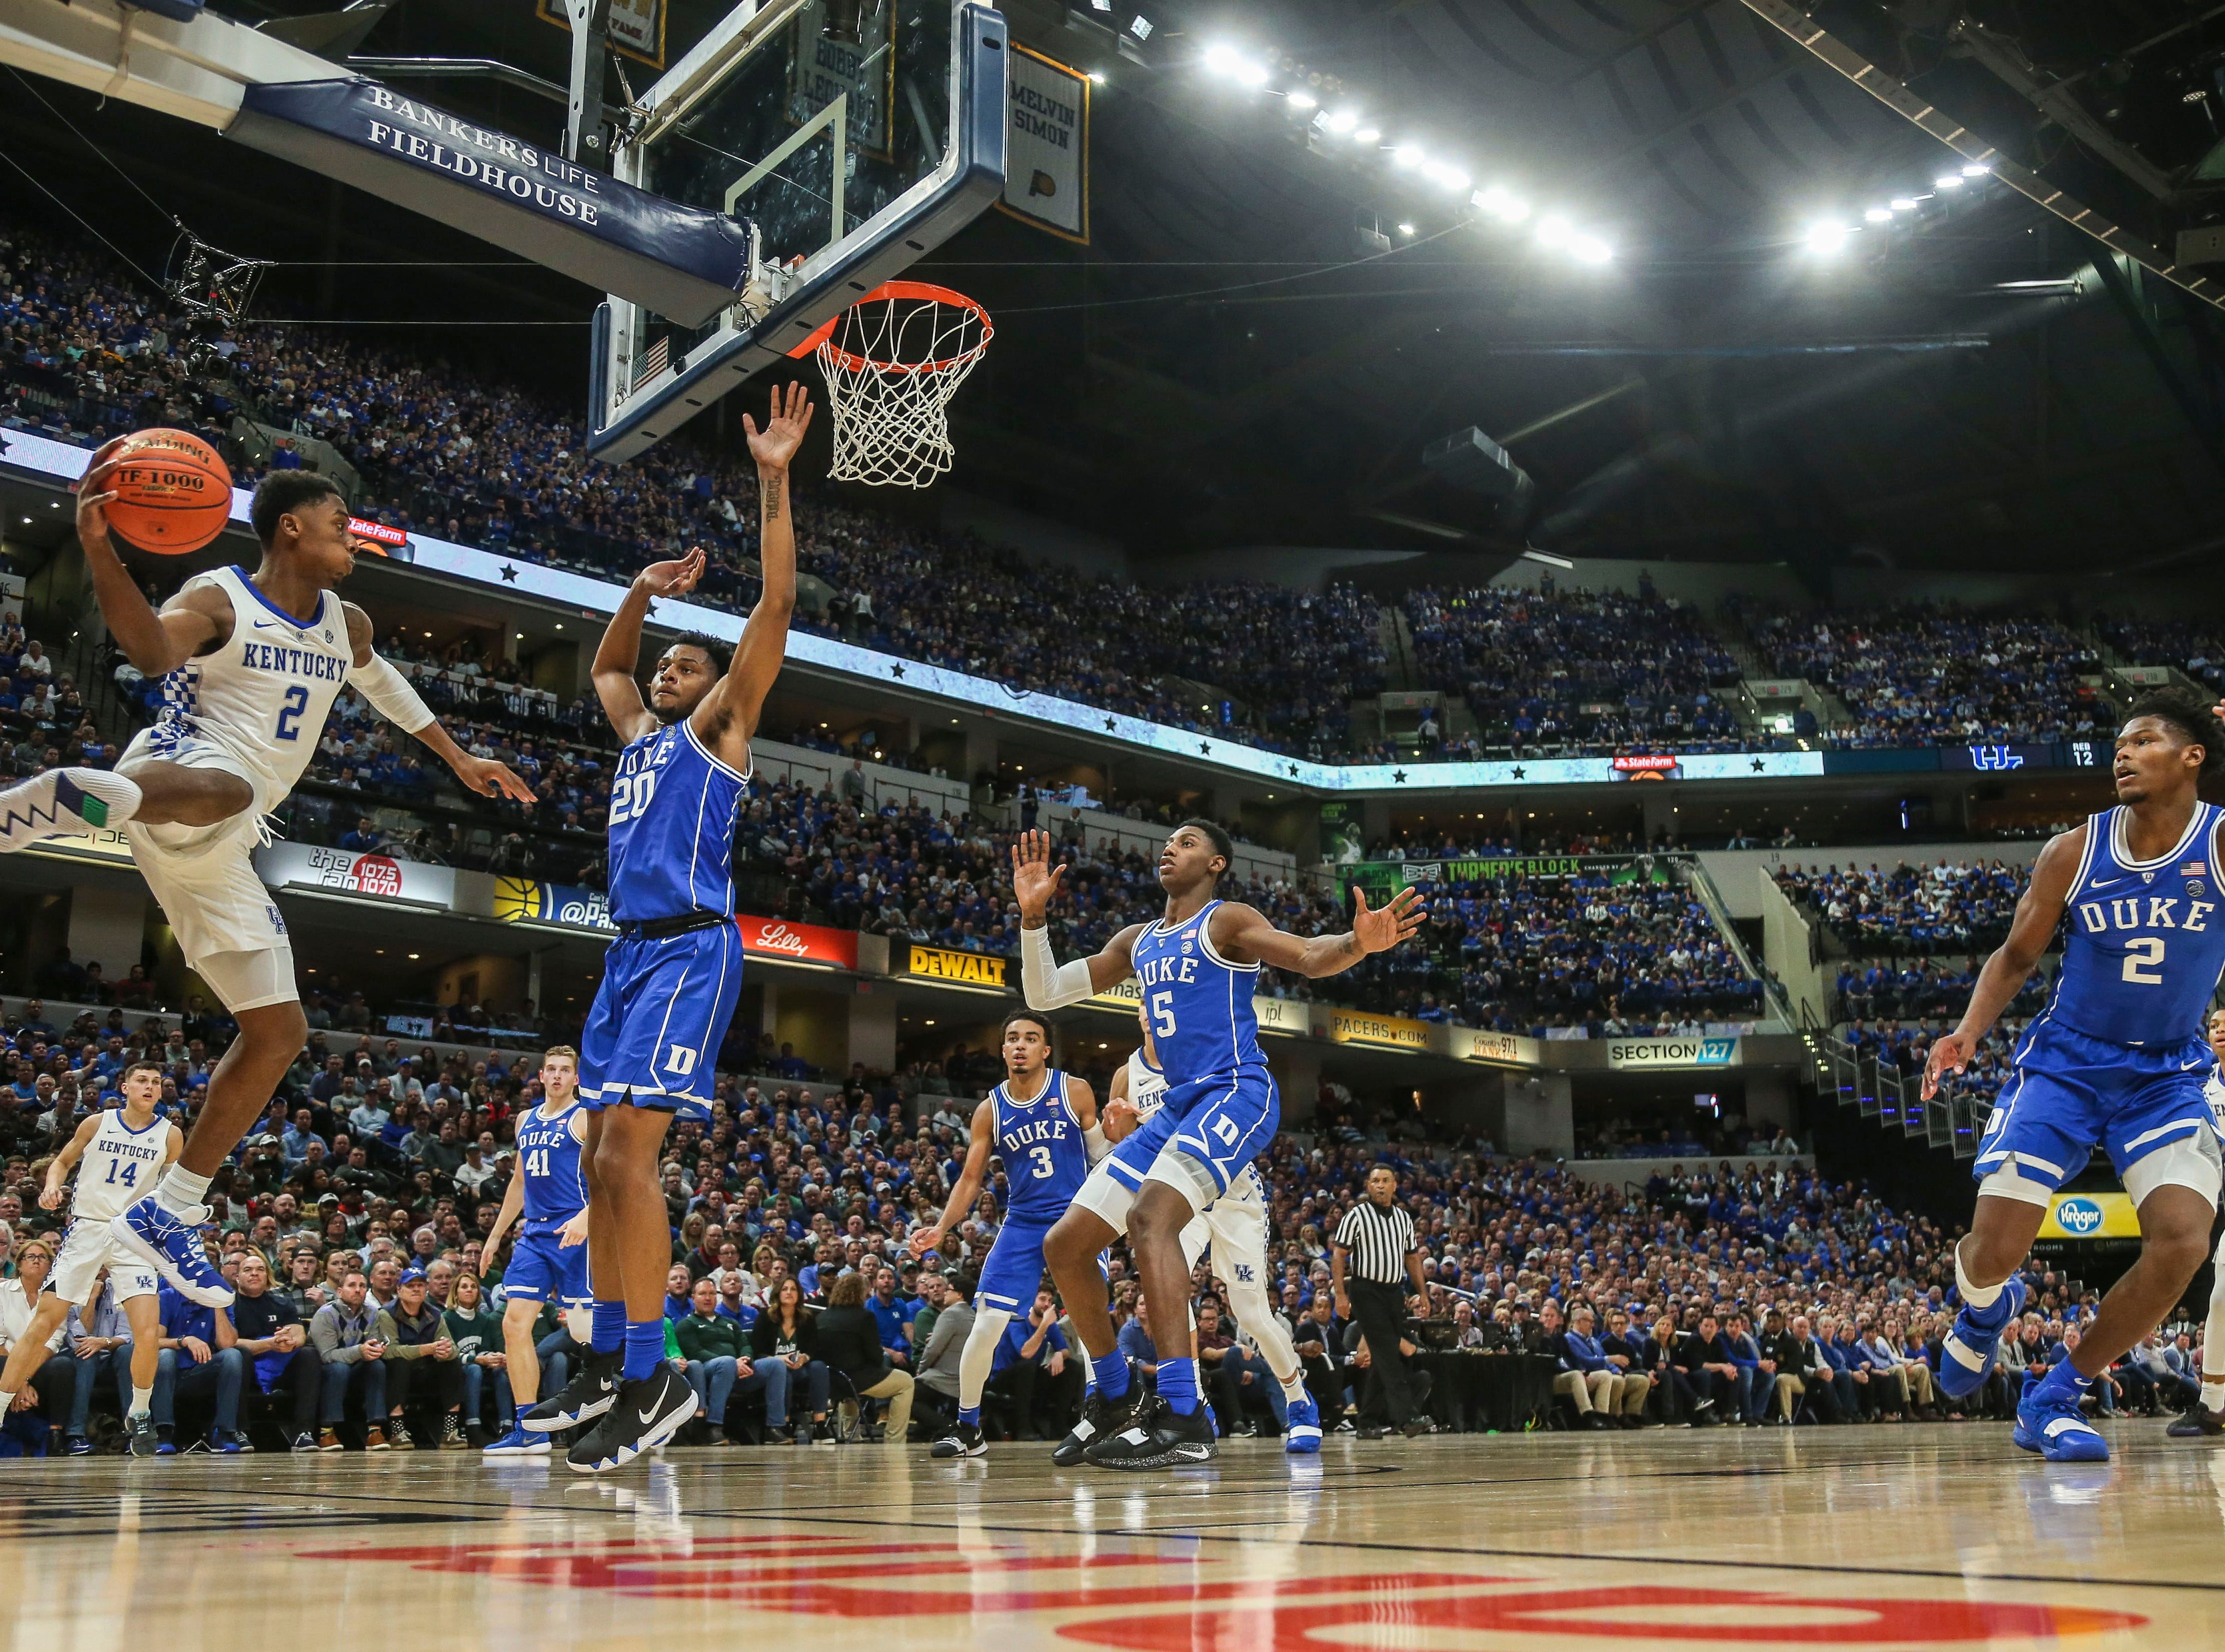 Kentucky's Ashton Hagan tries to pass the ball before going out of bounds against Duke at the Champions Classic Nov. 6, 2018.